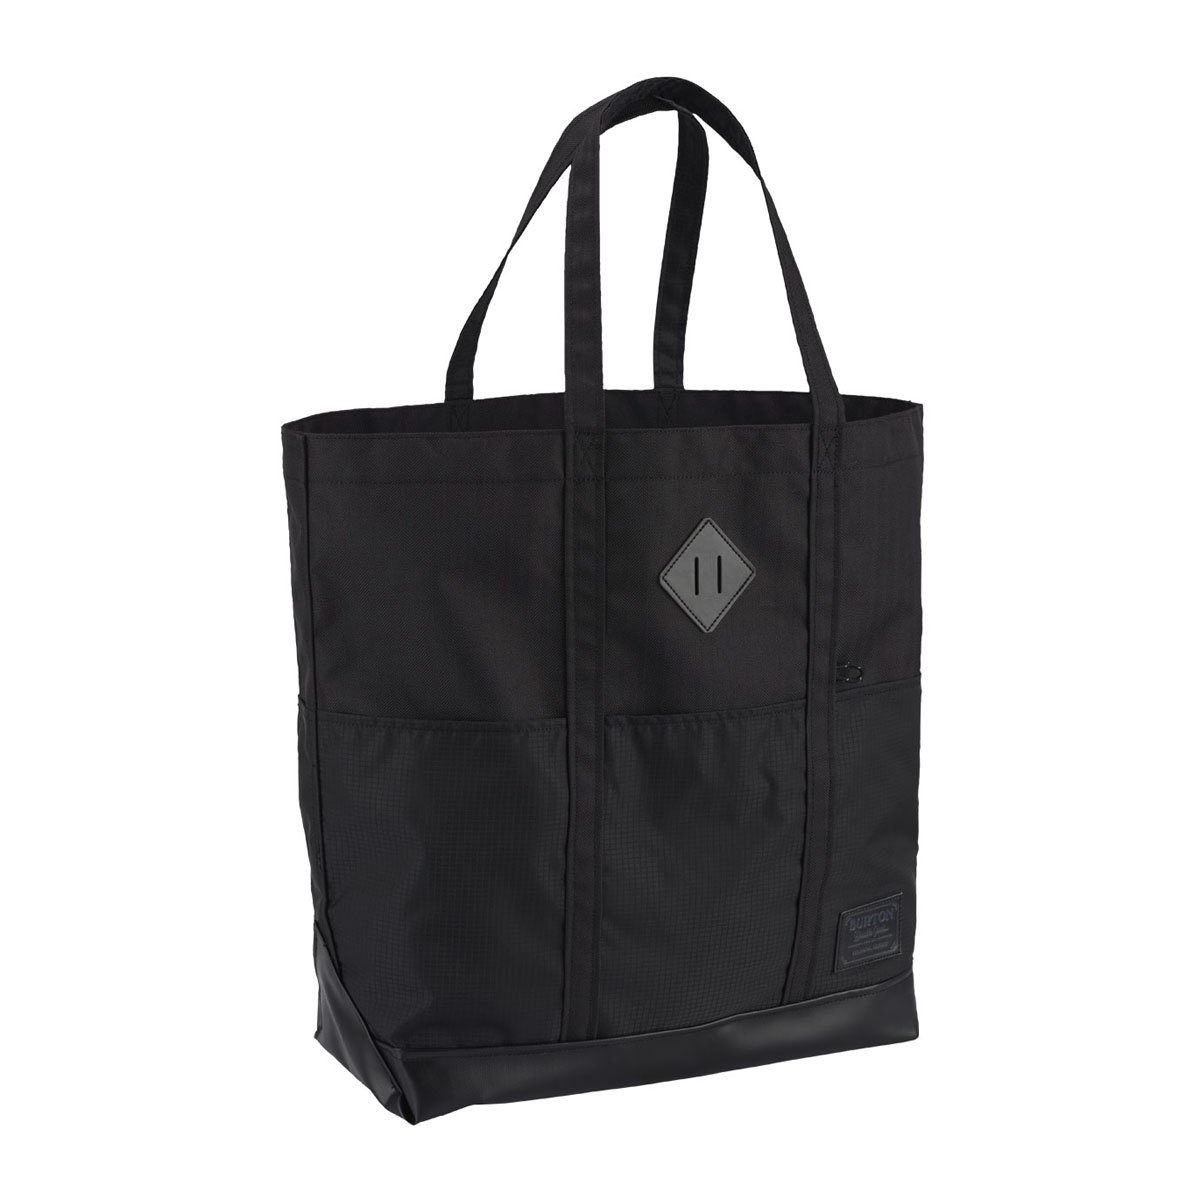 CRATE TOTE - LARGE